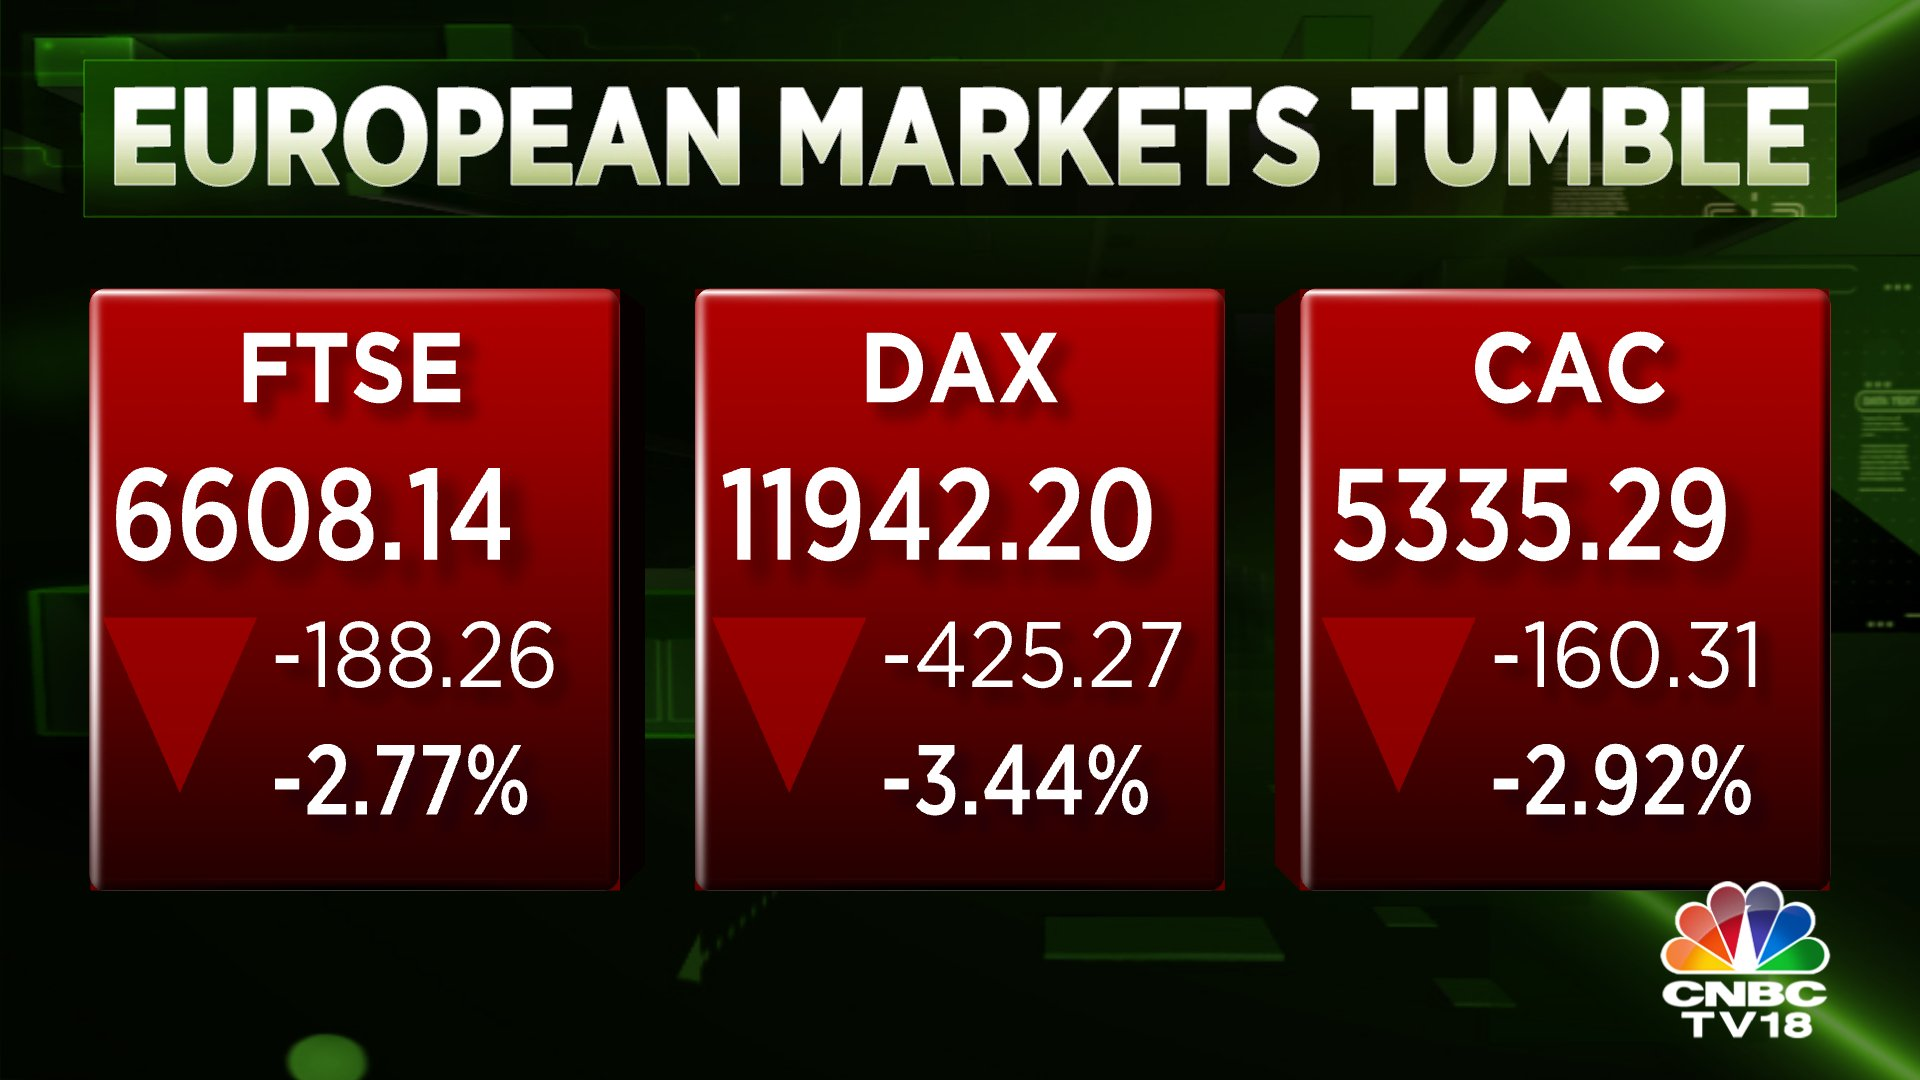 European markets extends losses for 6th session today## European markets extends losses for6thsession today       European shares declined for the sixth day on Friday, with the DAX hits the lowest level in eight years.